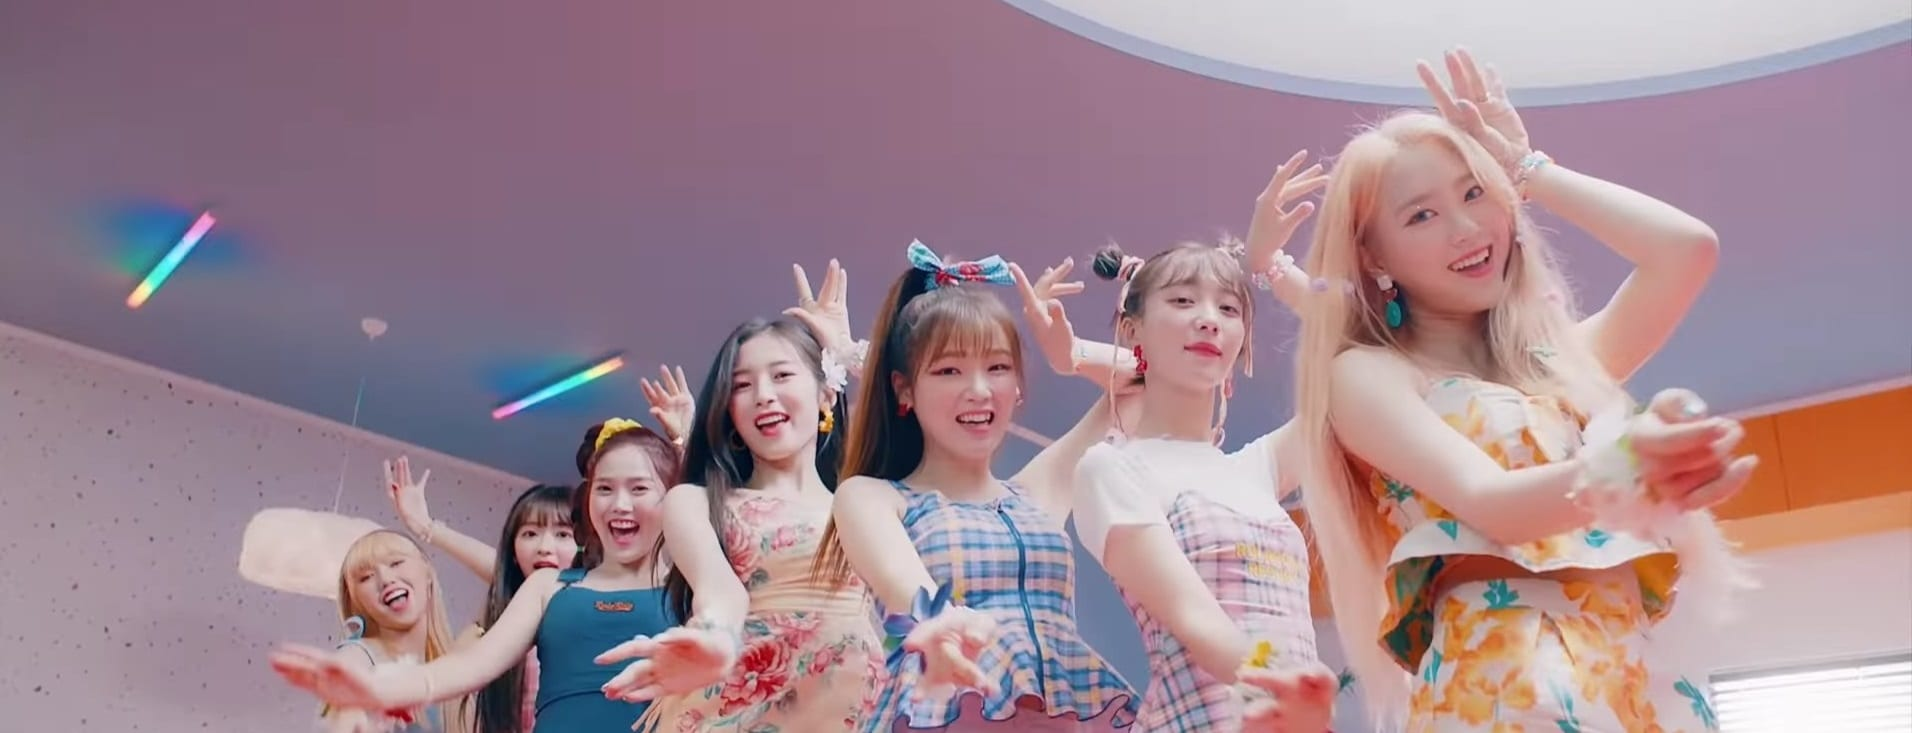 "WATCH: Oh My Girl Is Ready For A Summer Romance In ""Bungee (Fall In Love)"" MV"